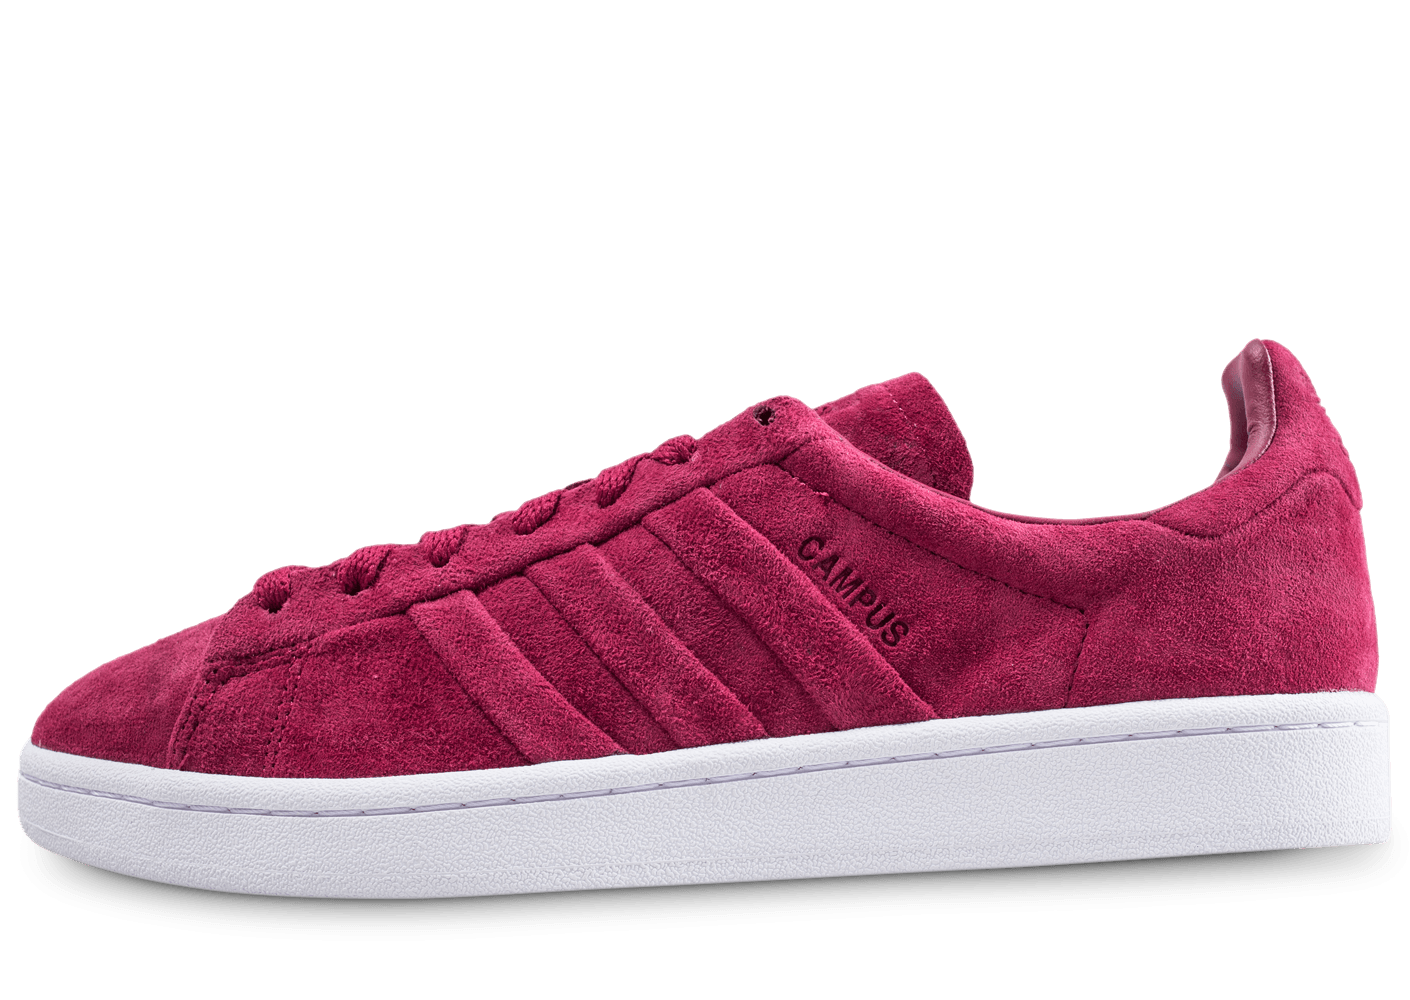 adidas campus homme bordeau